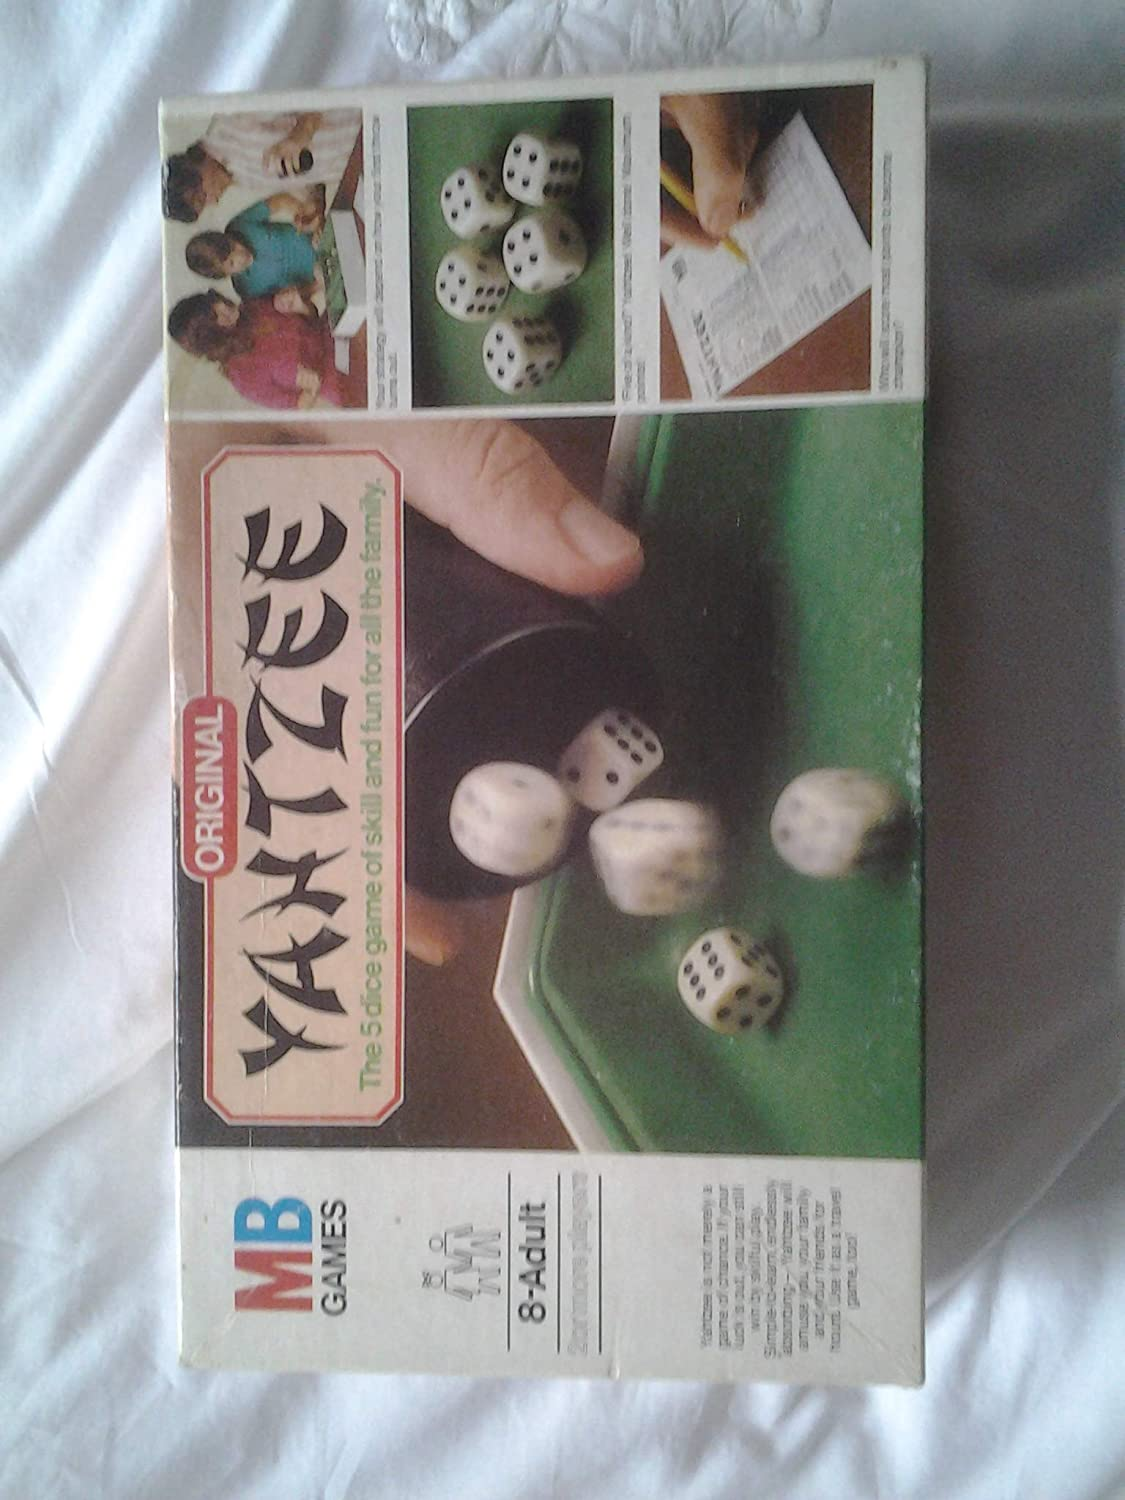 ORIGINAL YAHTZEE. 1982 EDITION BY MB GAMES: Amazon.es: Juguetes y juegos